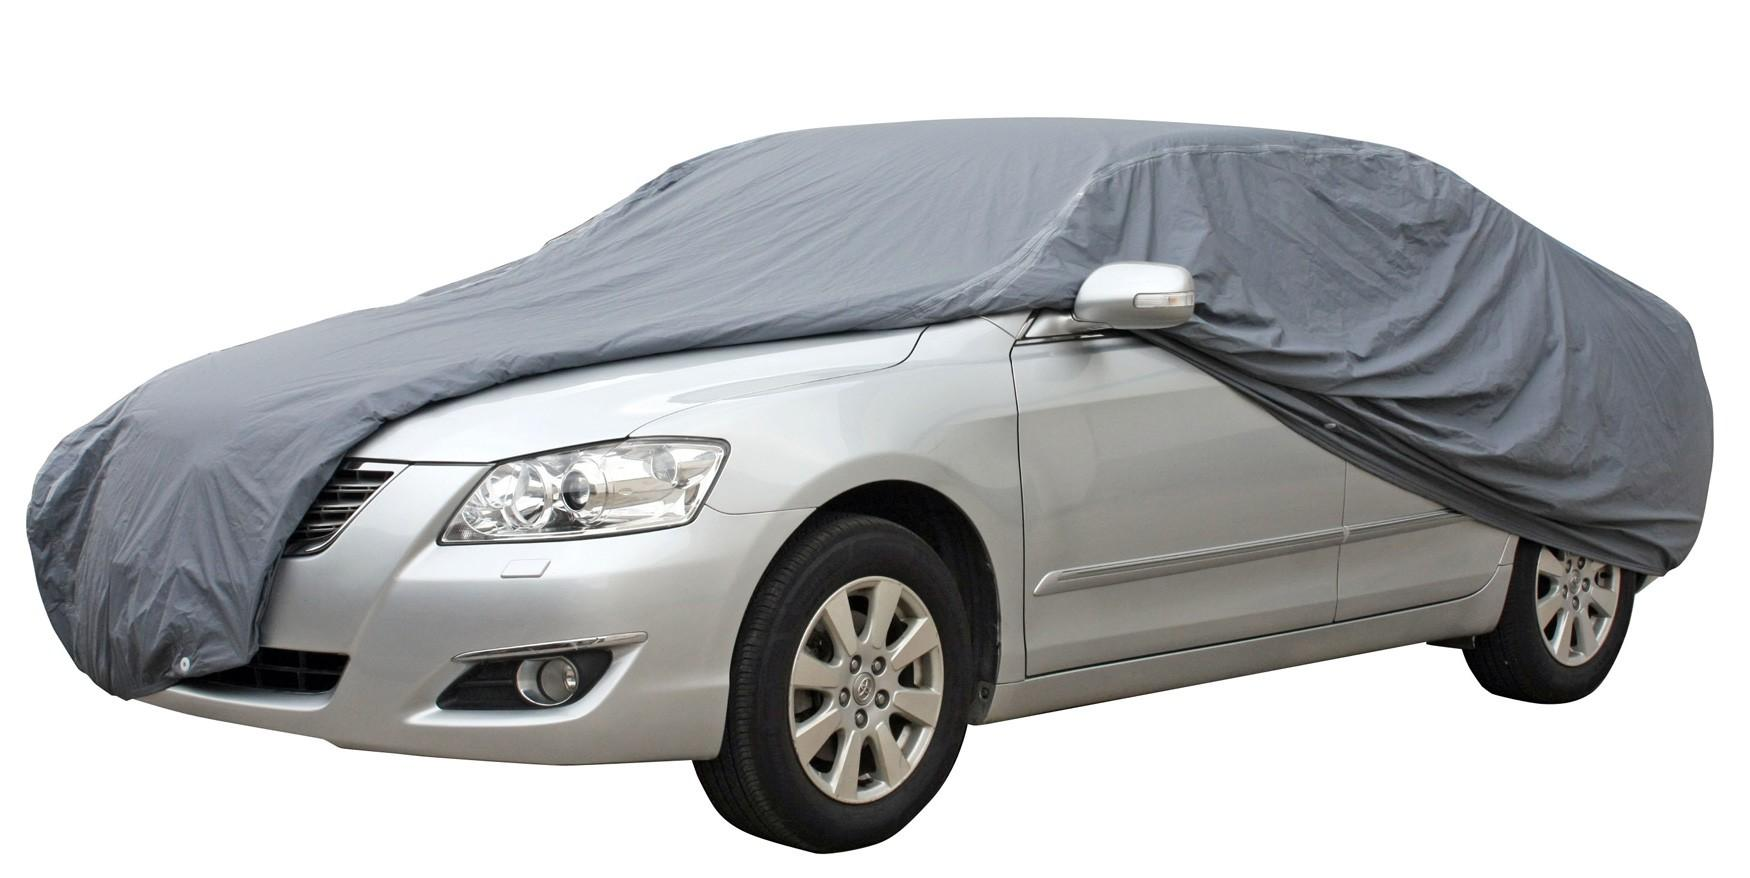 Waterproof Lightweight Nylon Car Cover for Automobile L-Size image on snachetto.com